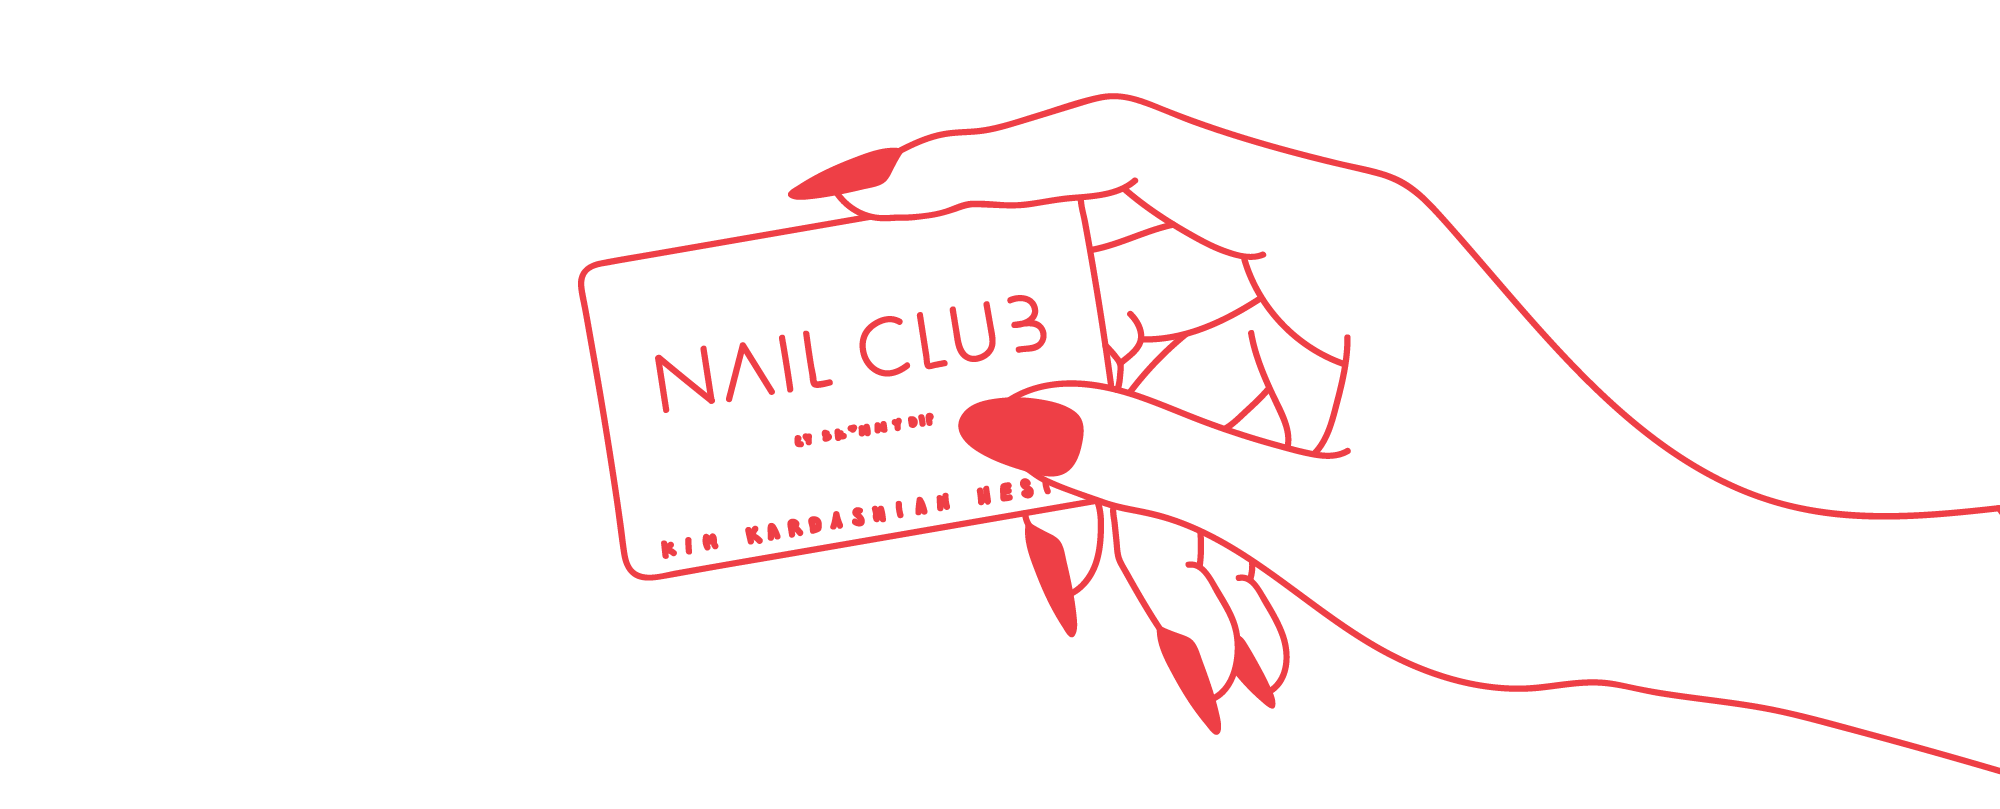 Nail Club Header Image